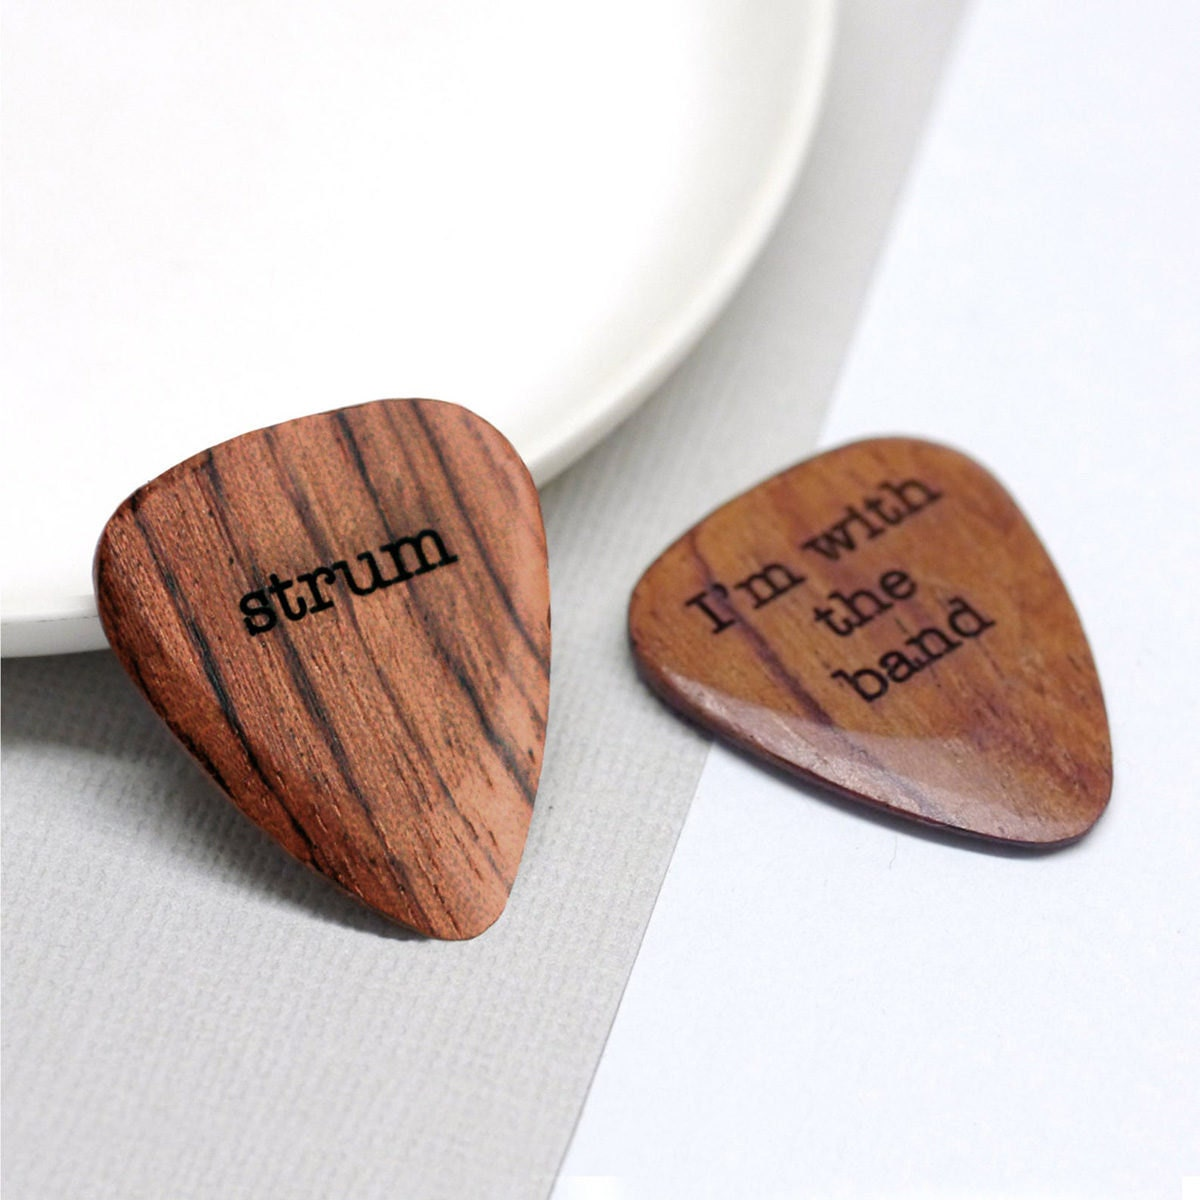 Wooden guitar pick from Maria Allen Boutique, on Etsy